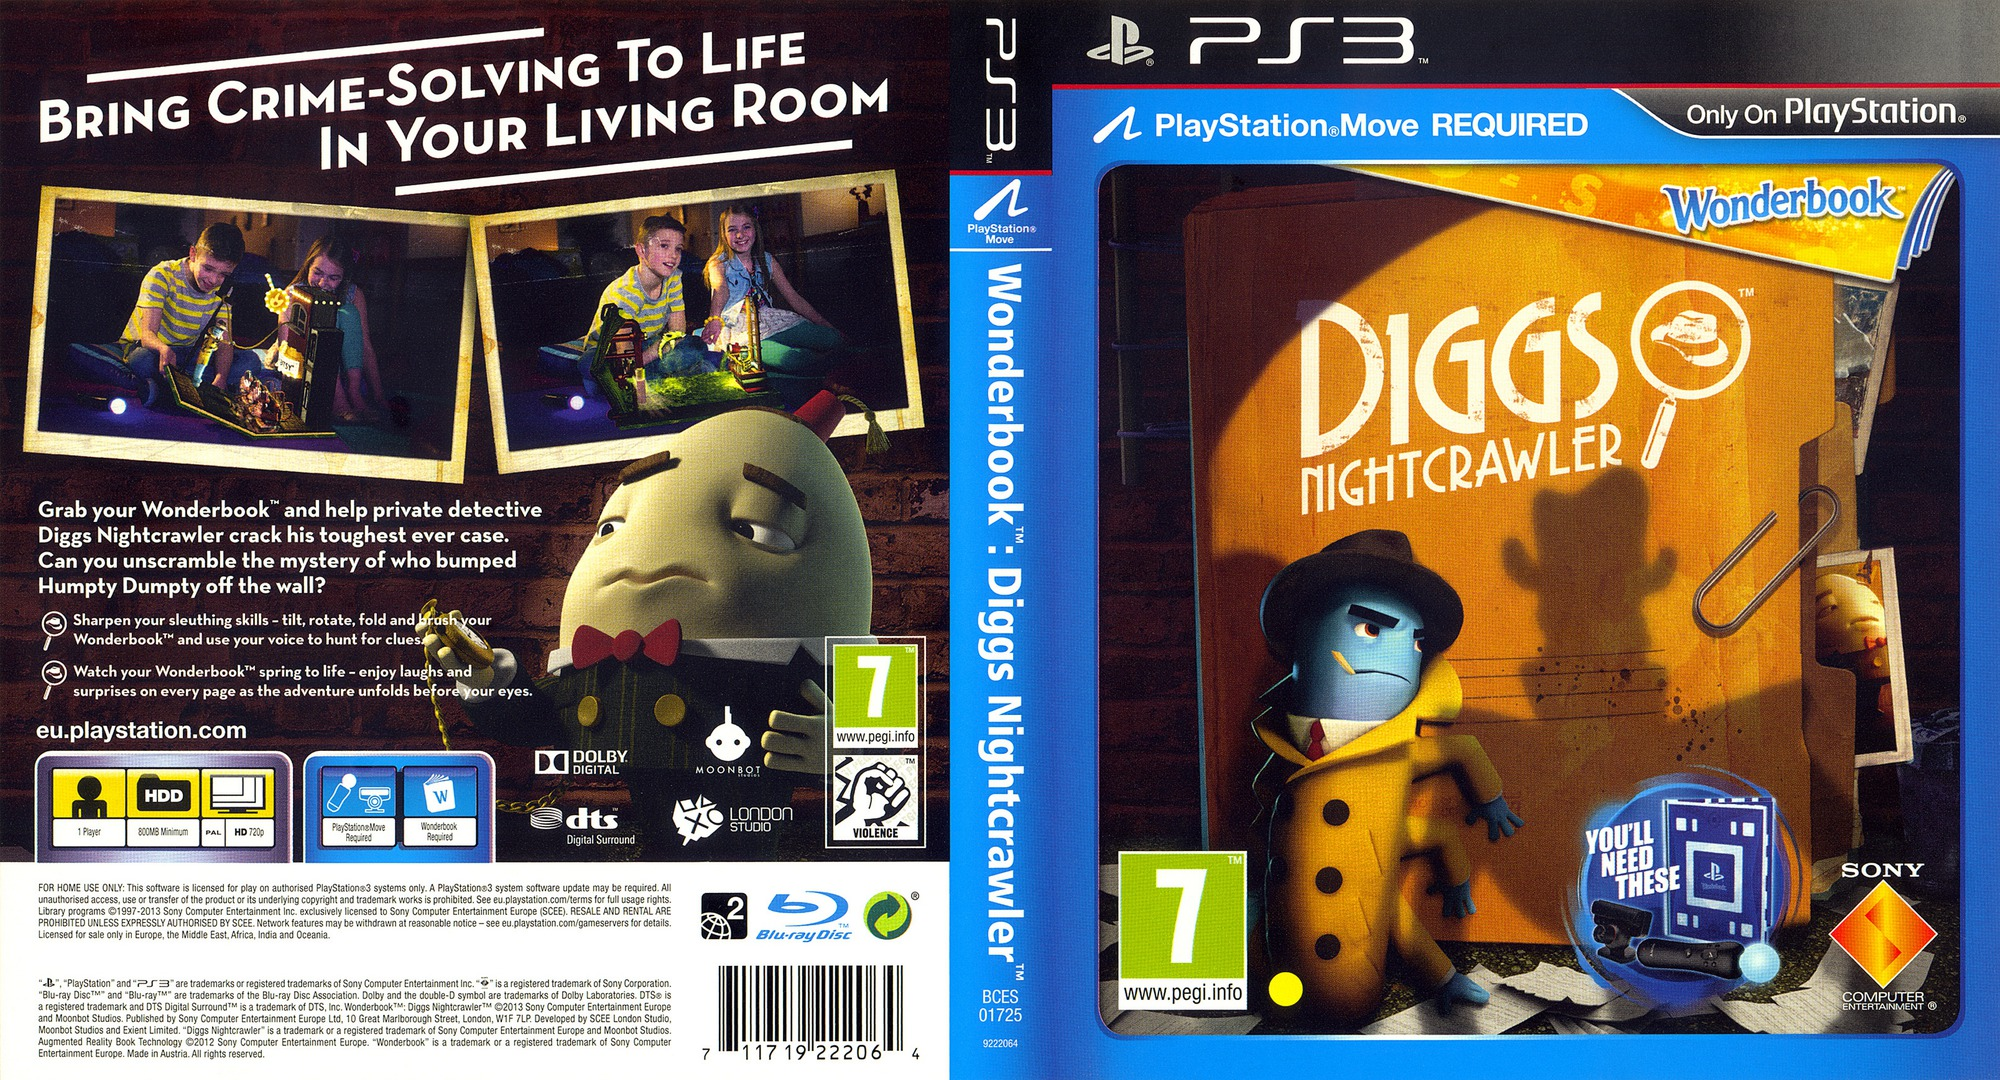 Wonderbook Diggs: Nightcrawler PS3 coverfullHQ (BCES01725)